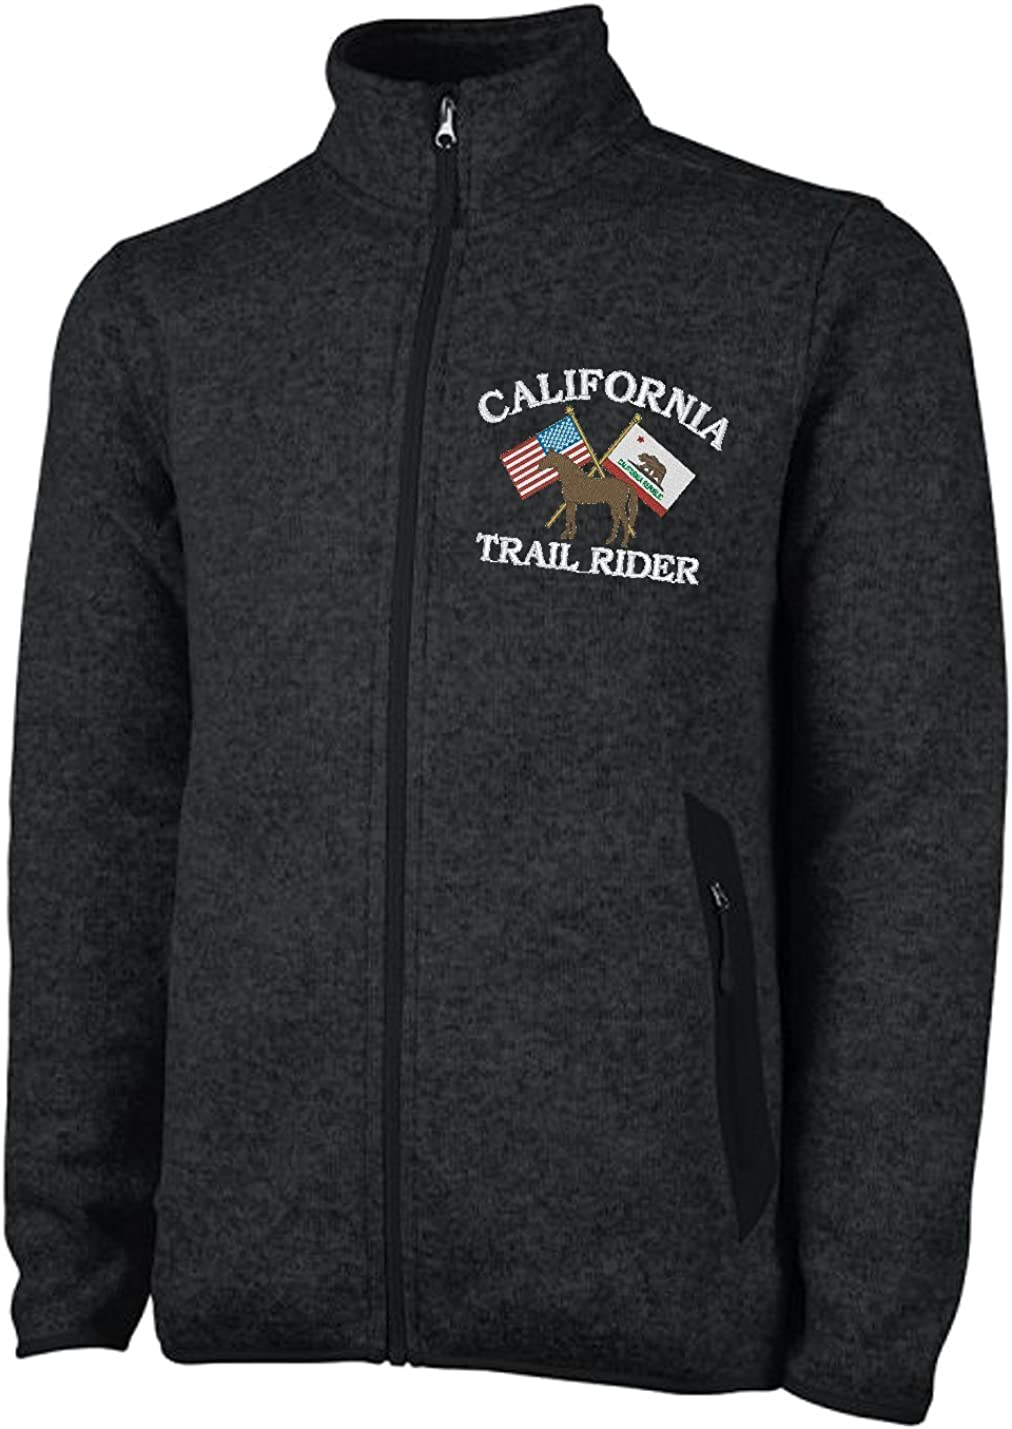 Embroidered Mens Charles River Calfornia Trail Rider Sweater Fleece Jacket